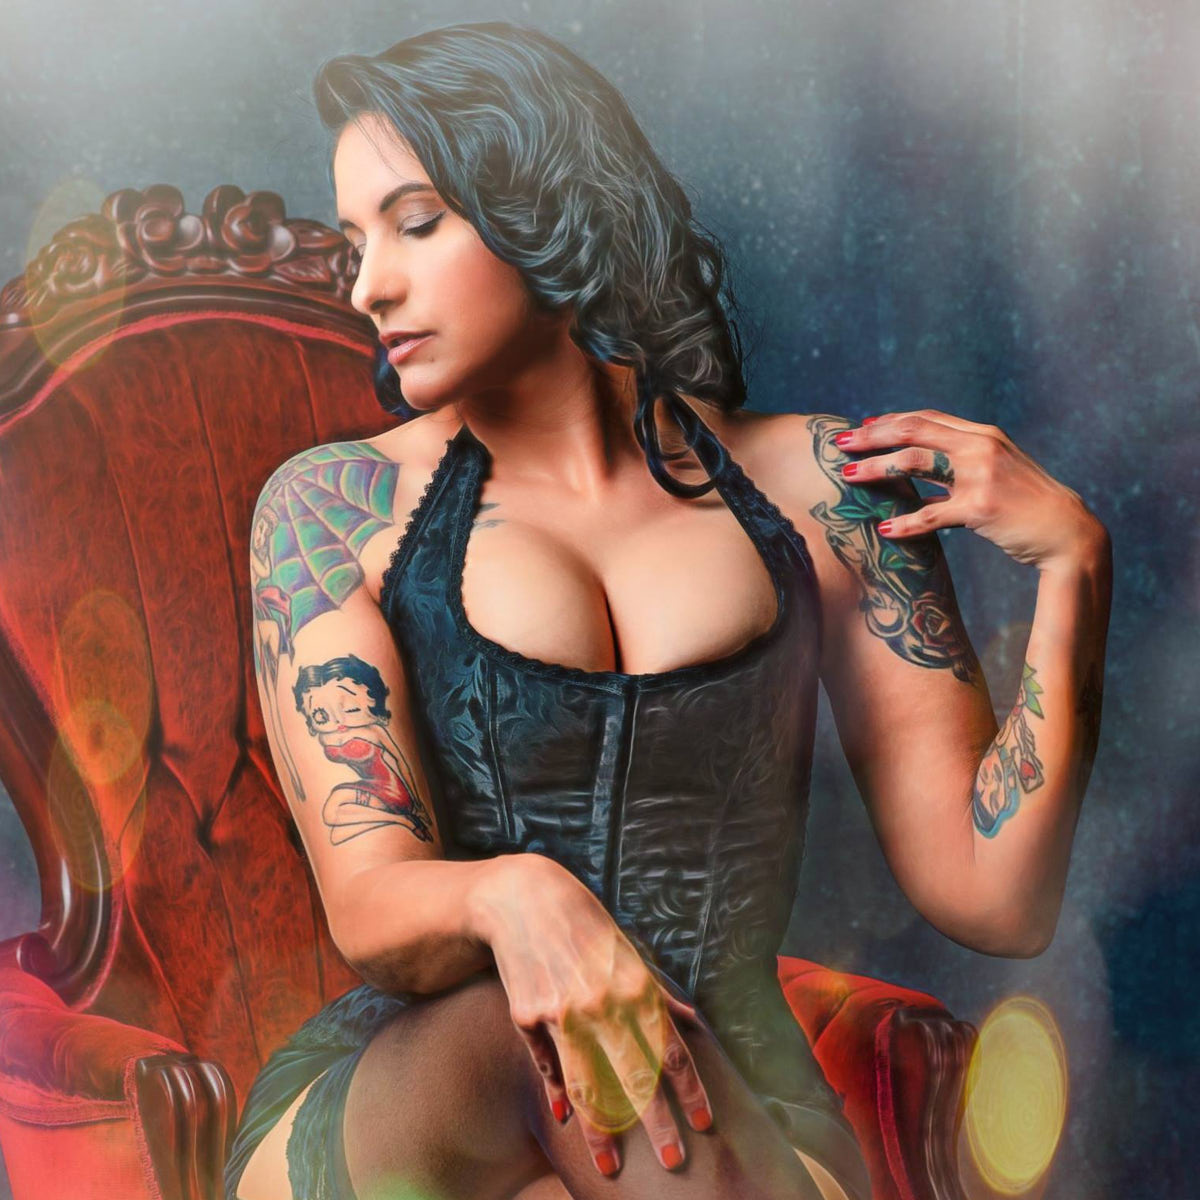 boudoir photo of a woman in a corset on a velvet chair